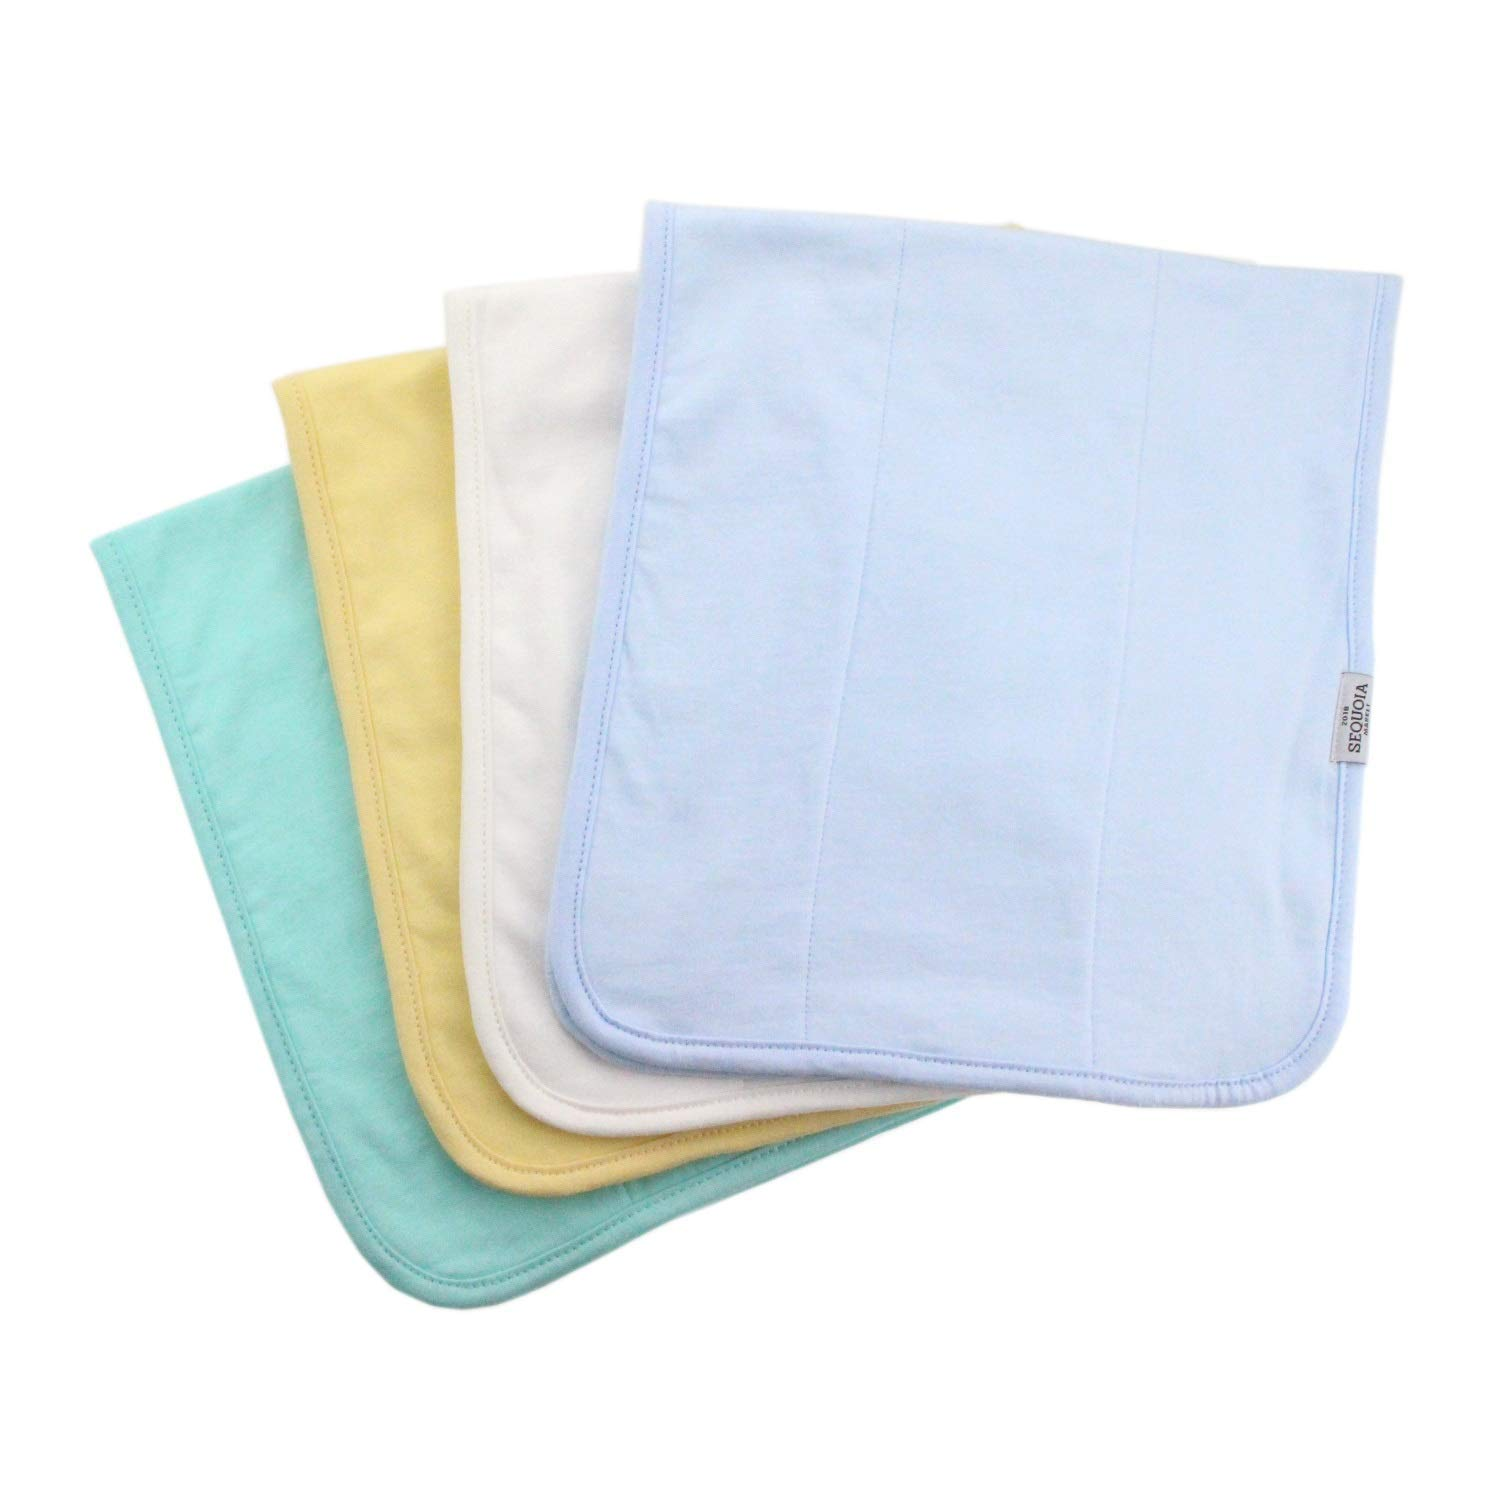 Sequoia Market Baby Burp Cloths, 3 Layers of Premium Organic Cotton, XL (23 x 10), Soft and Luxurious, Exceptionally Absorbent, Giftable for Showers/Layette, Newborn Boys/Girls, 4 Pack by Sequoia Market